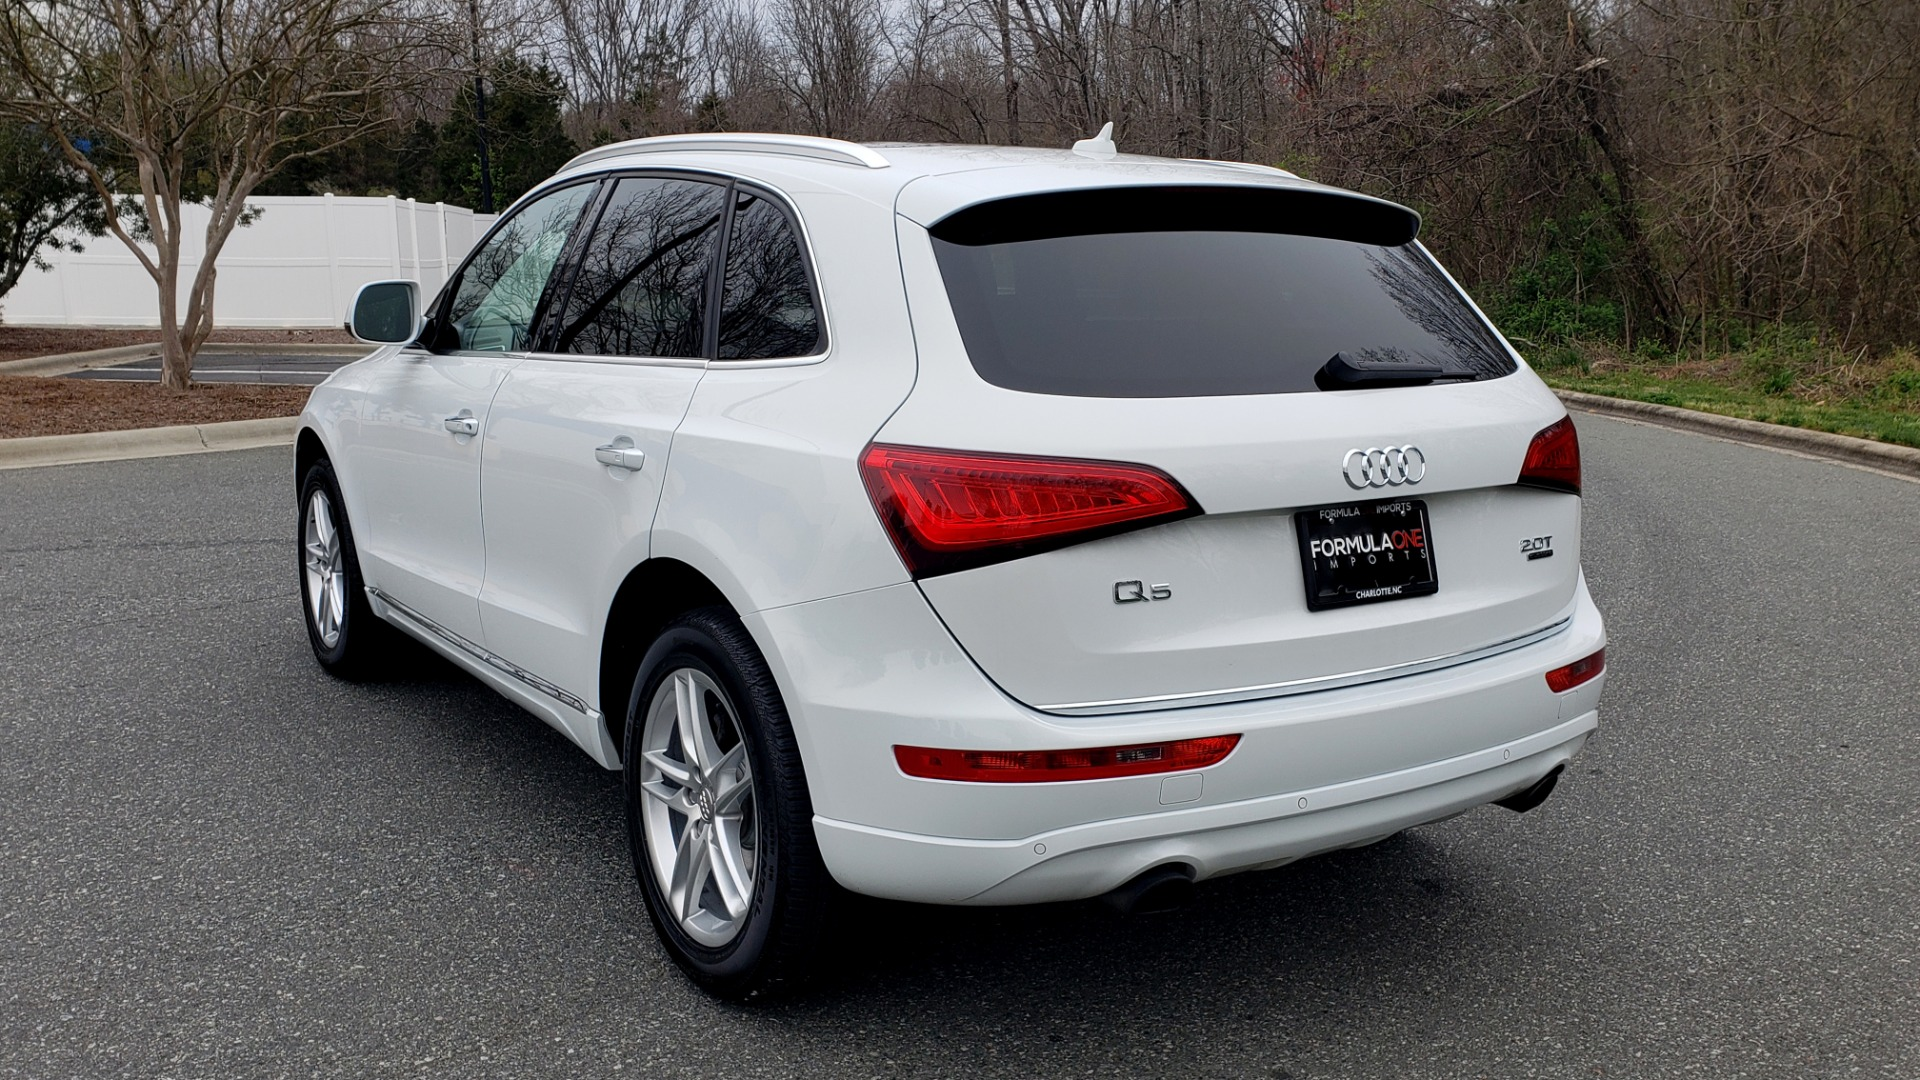 Used 2017 Audi Q5 PREMIUM PLUS / TECH / NAV / PANO-ROOF / B&O SND / REARVIEW for sale Sold at Formula Imports in Charlotte NC 28227 3